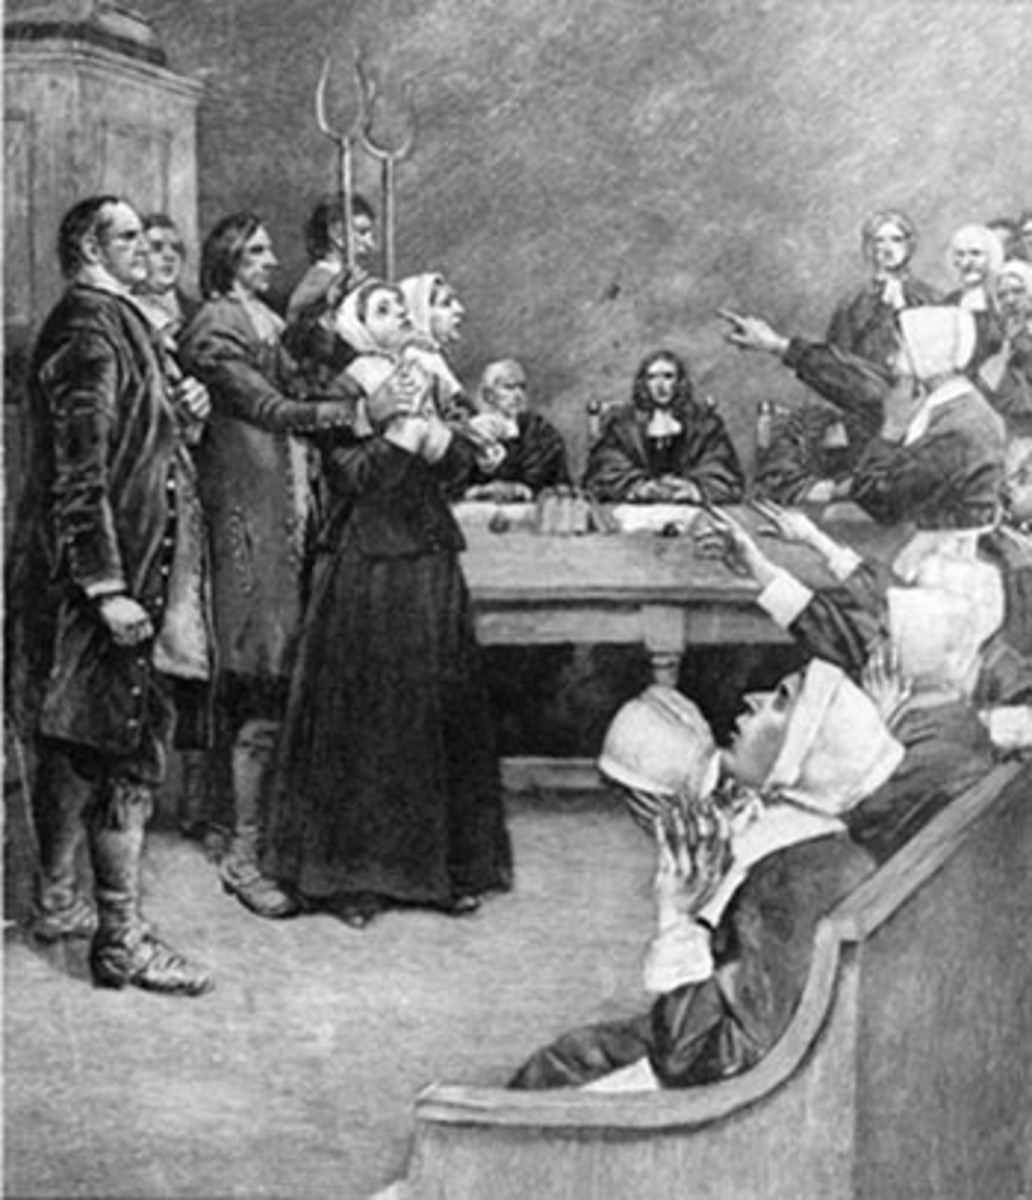 Women were often brought to trial due to witch accusals.